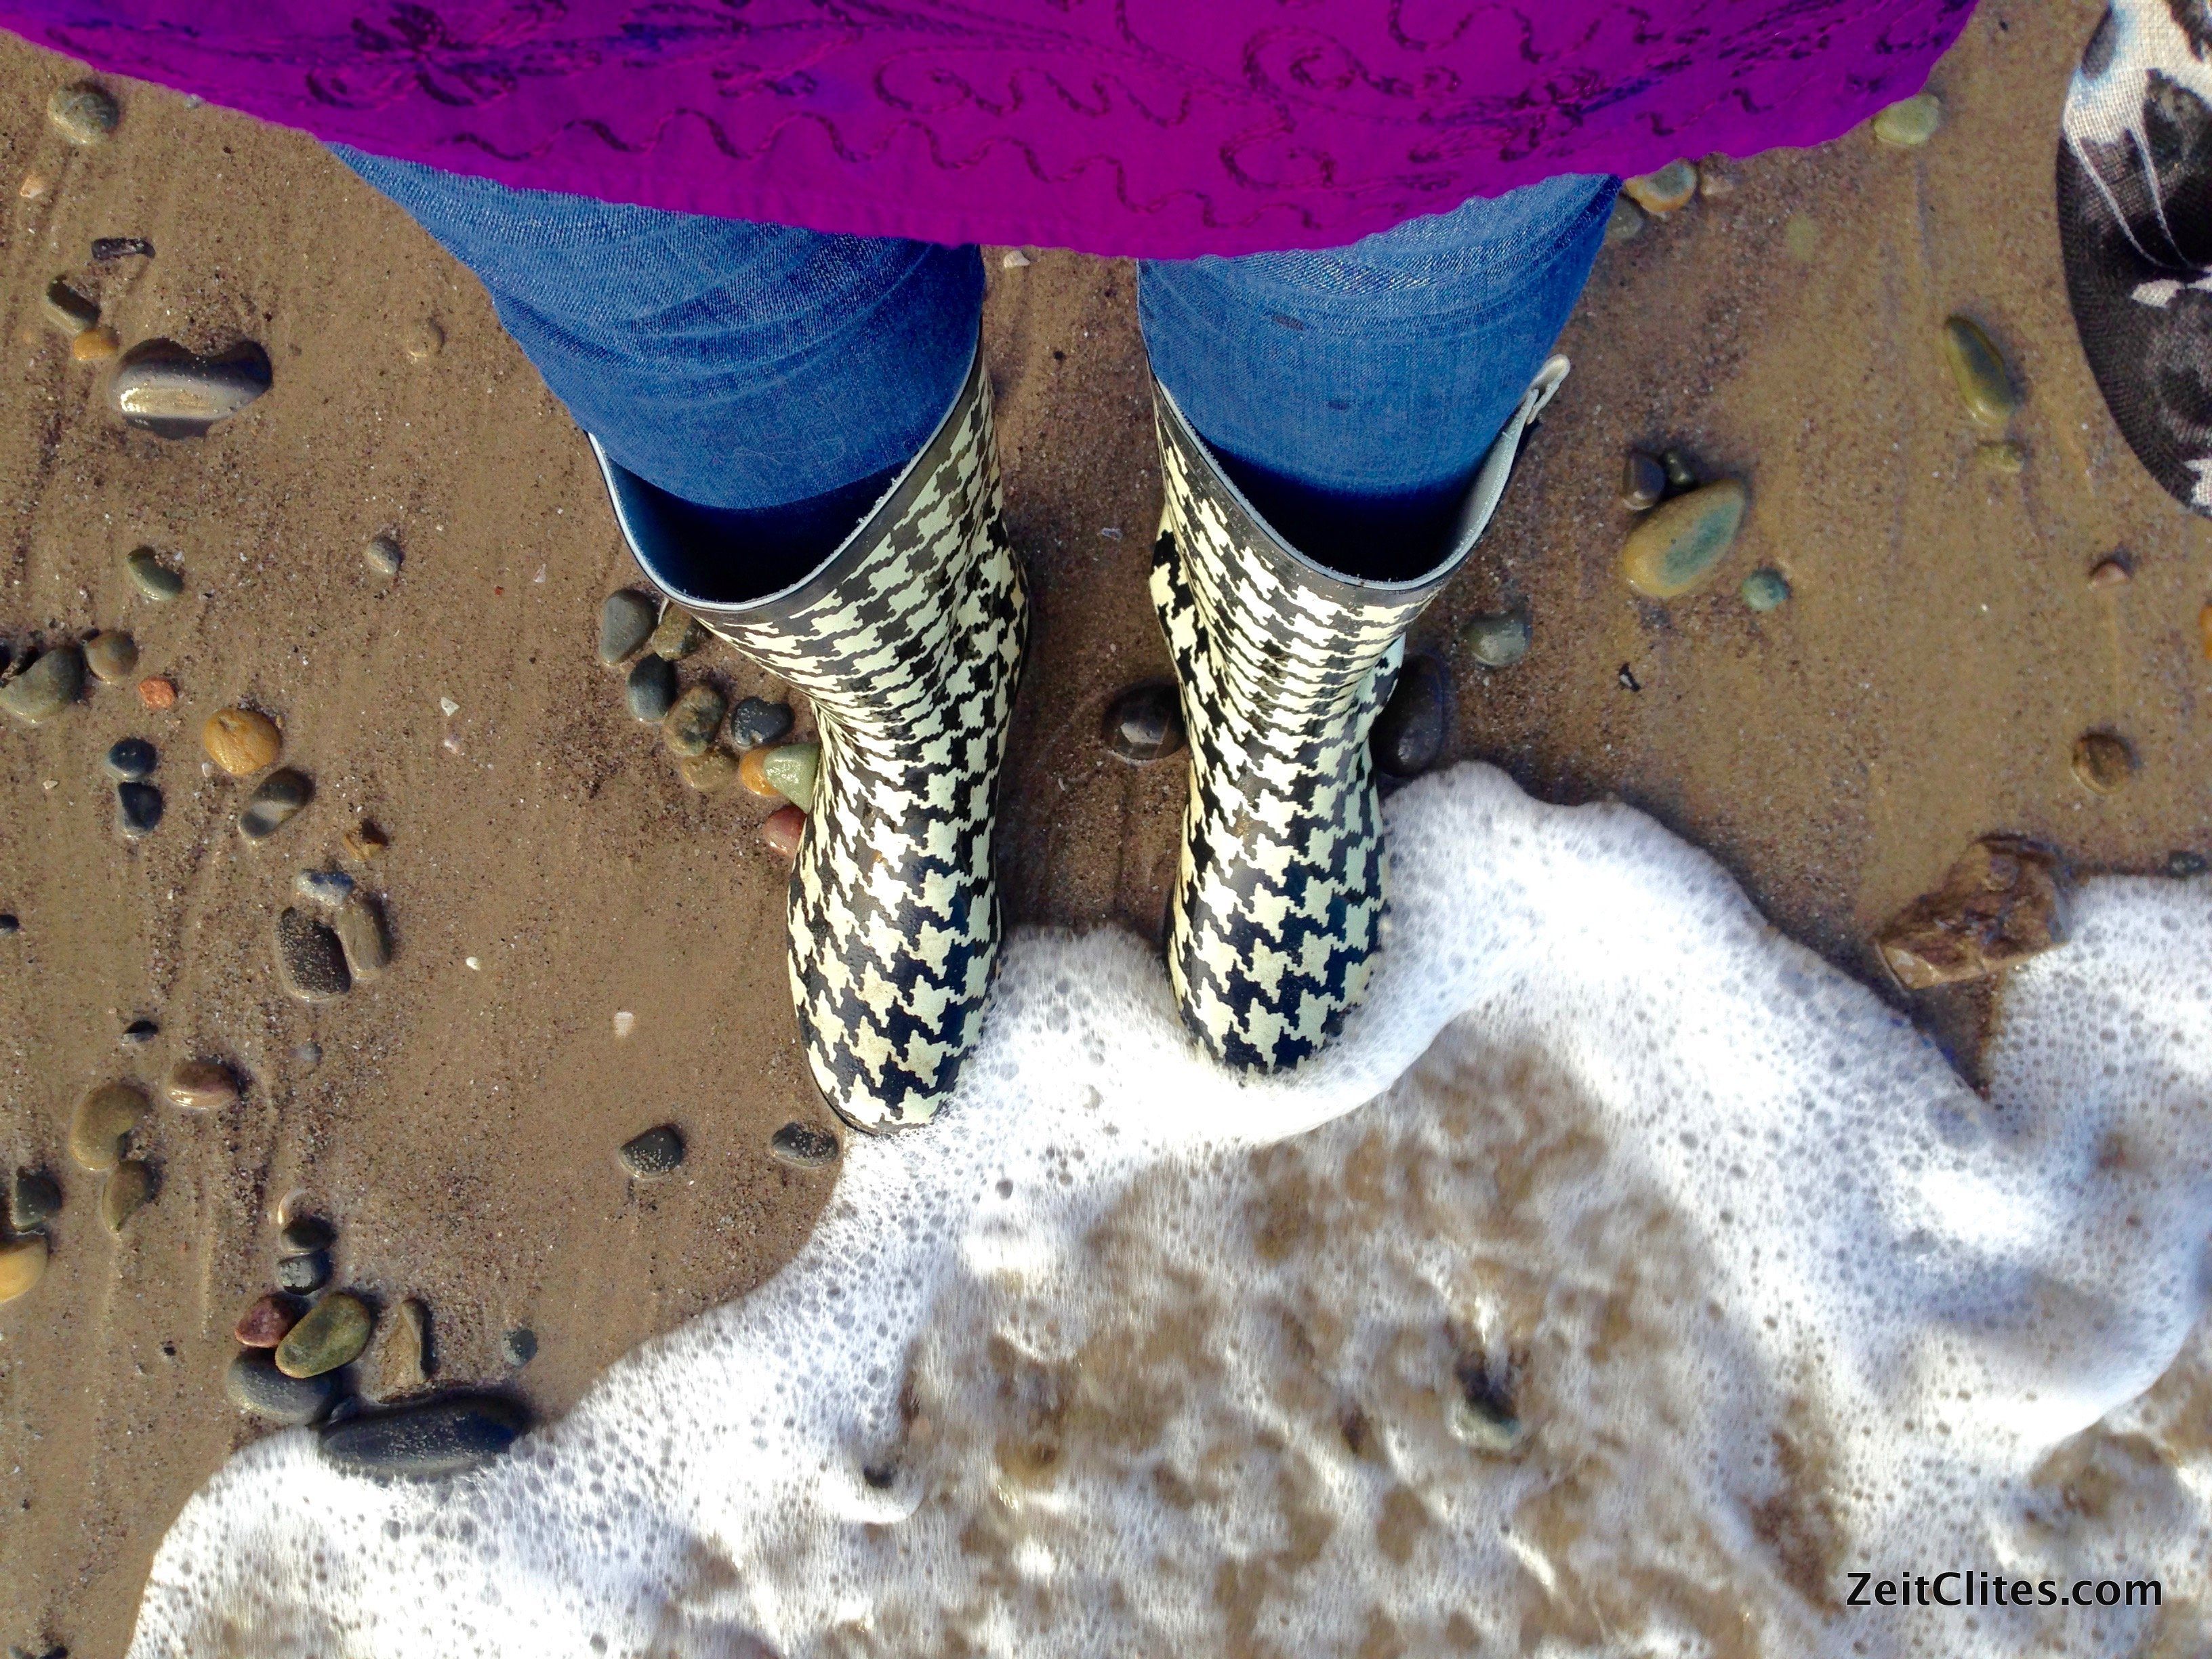 My Wellies loved being tickled by the waves.